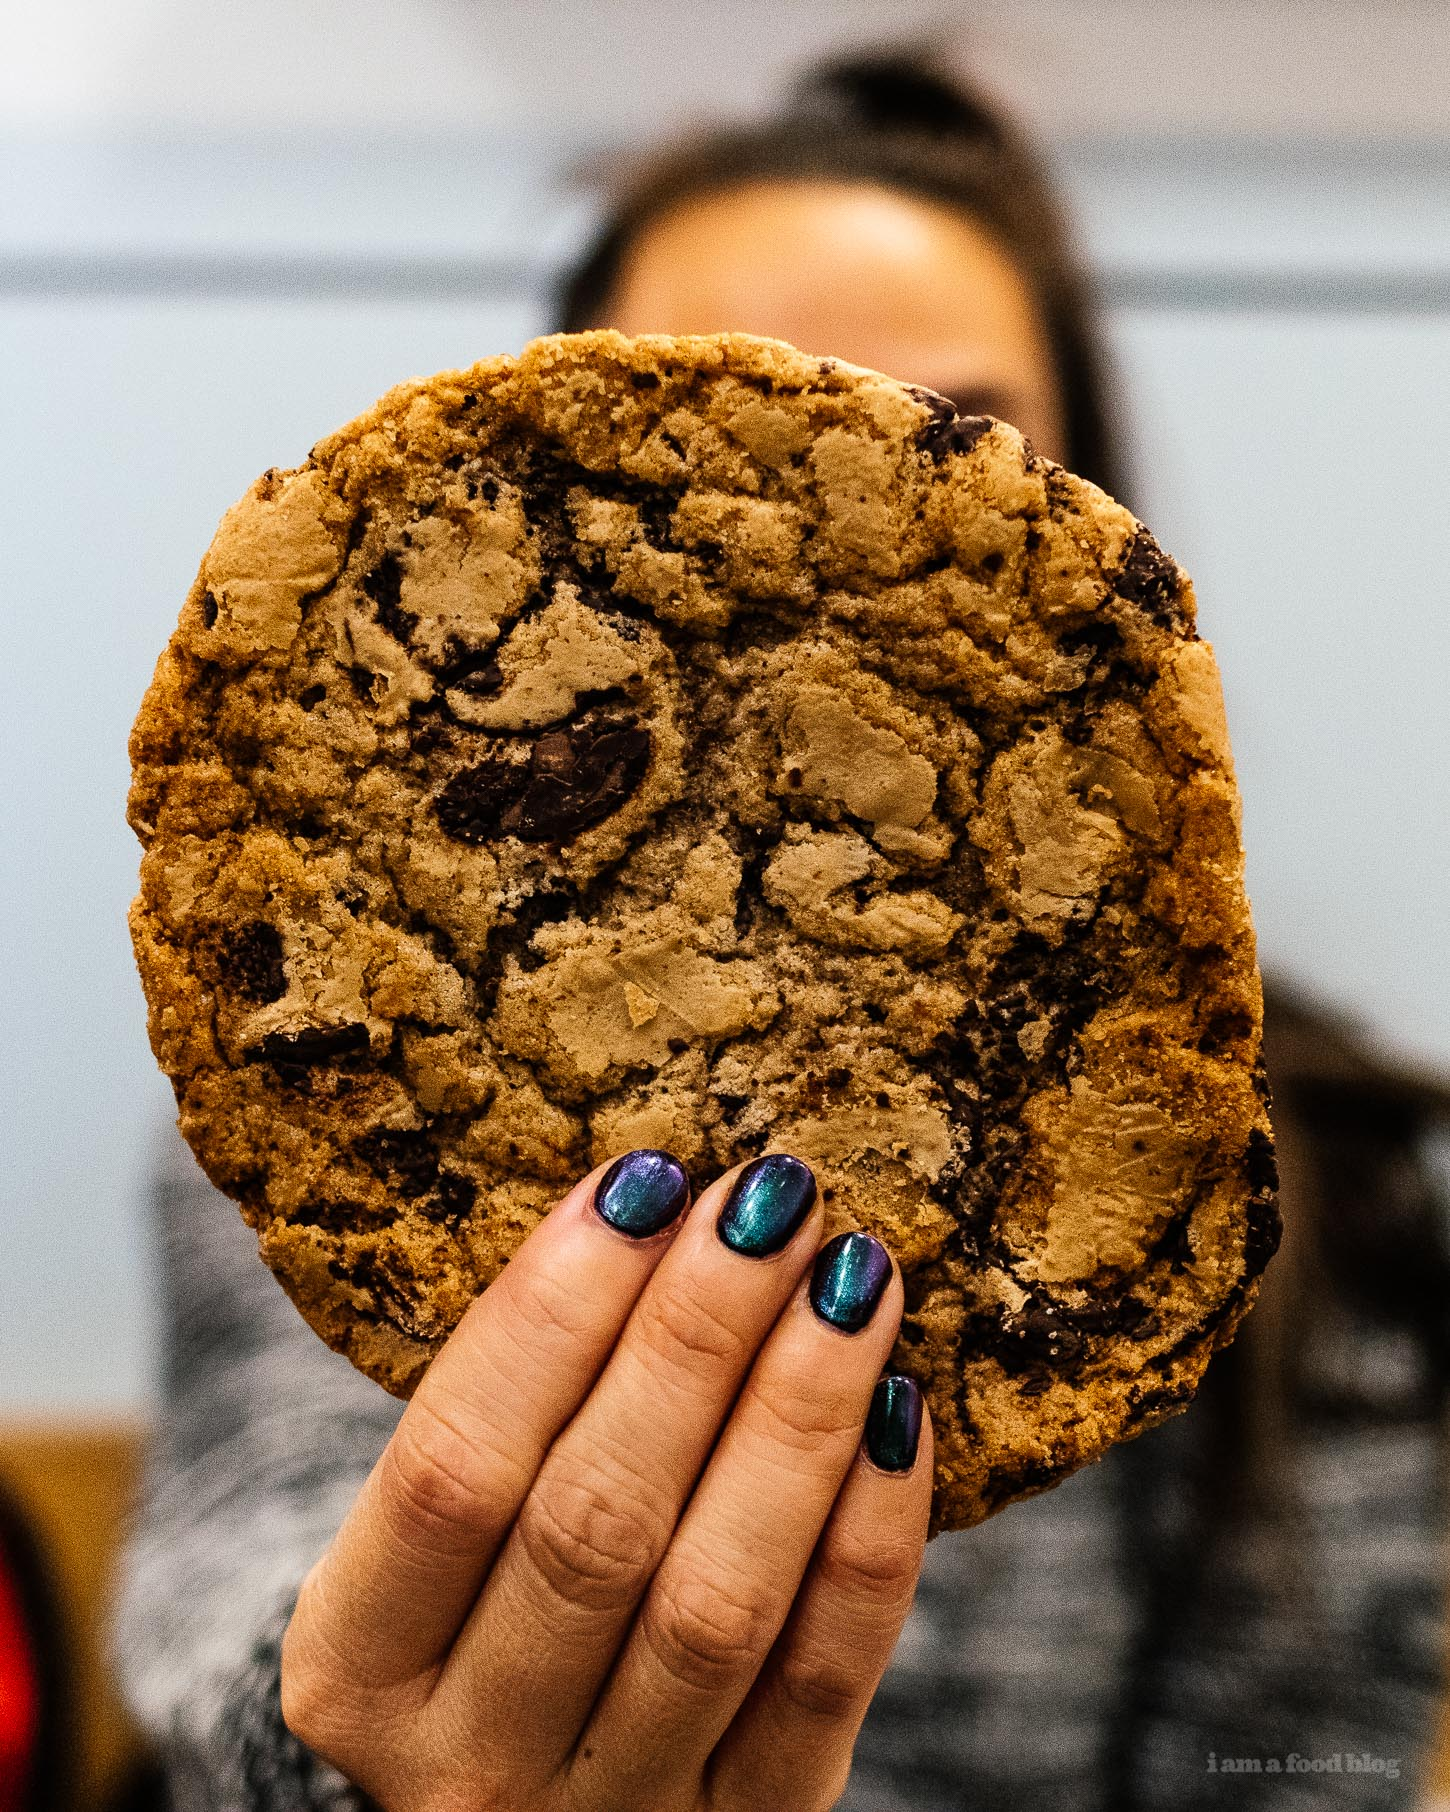 Jacques Torres's famous Chocolate Chip Cookie | www.iamafoodblog.com